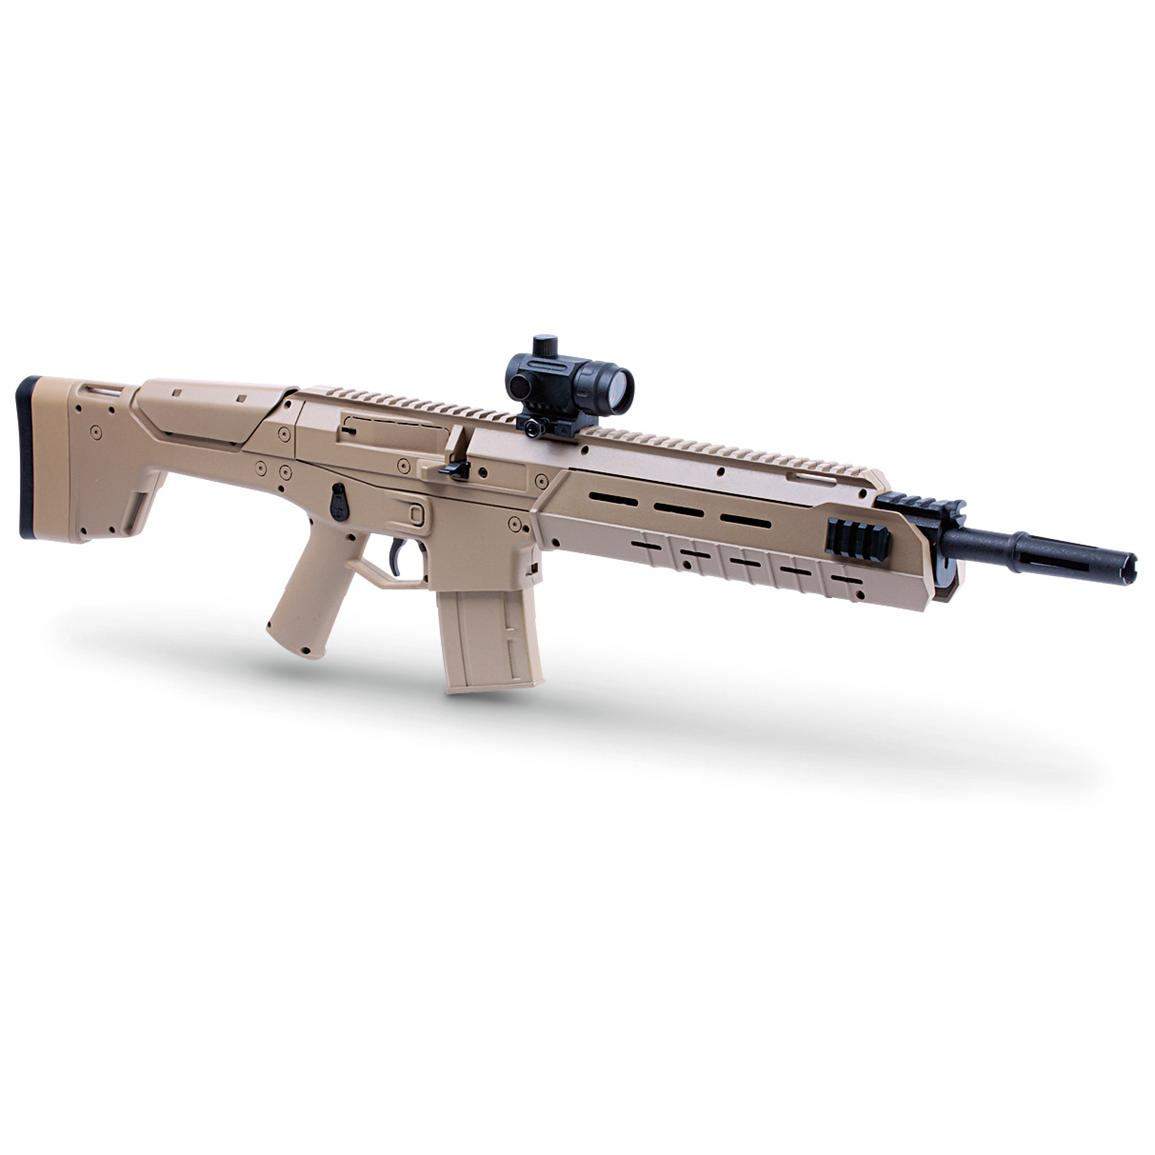 Crosman® MK-177 Tactical Air Rifle, Desert Tan